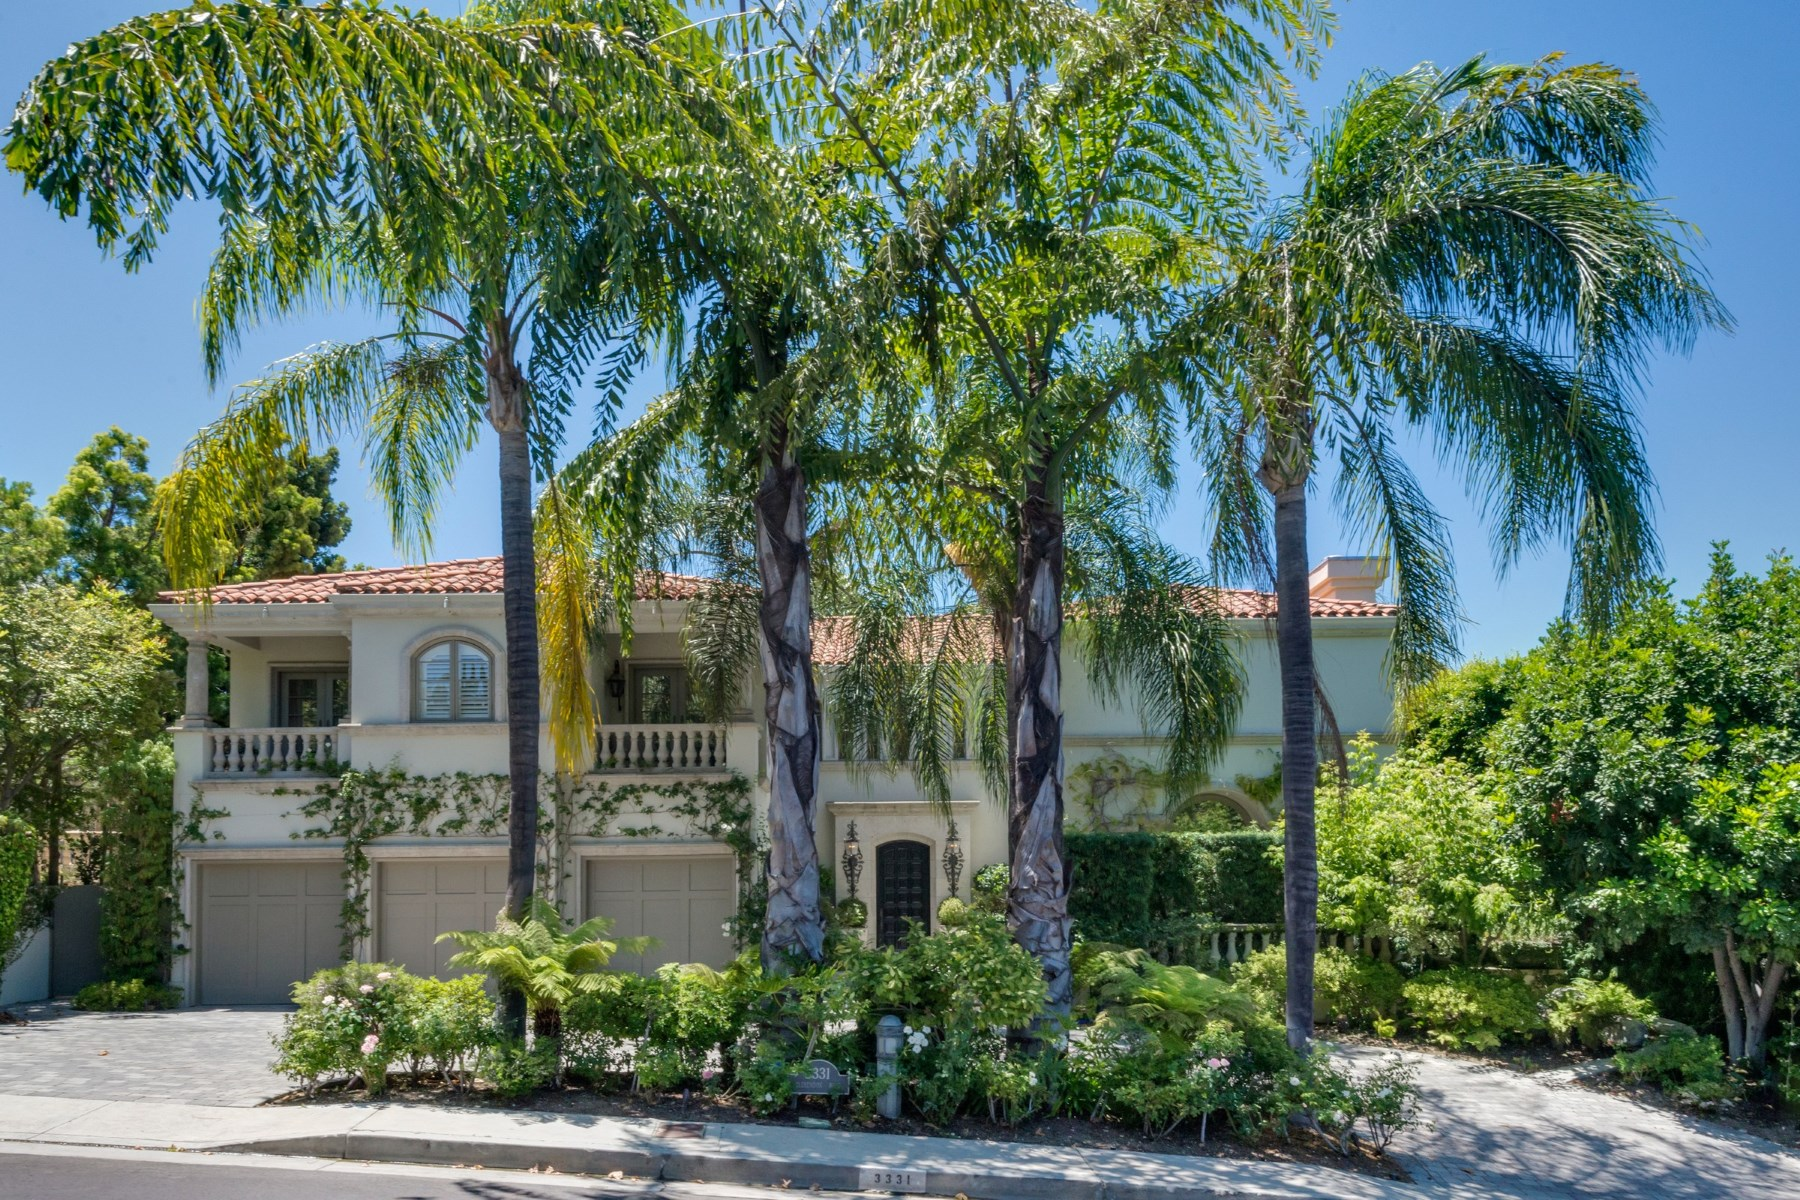 Single Family Home for Sale at Prestigious Mulholland Estates 3331 Clerendon Road Beverly Hills, California, 90210 United States